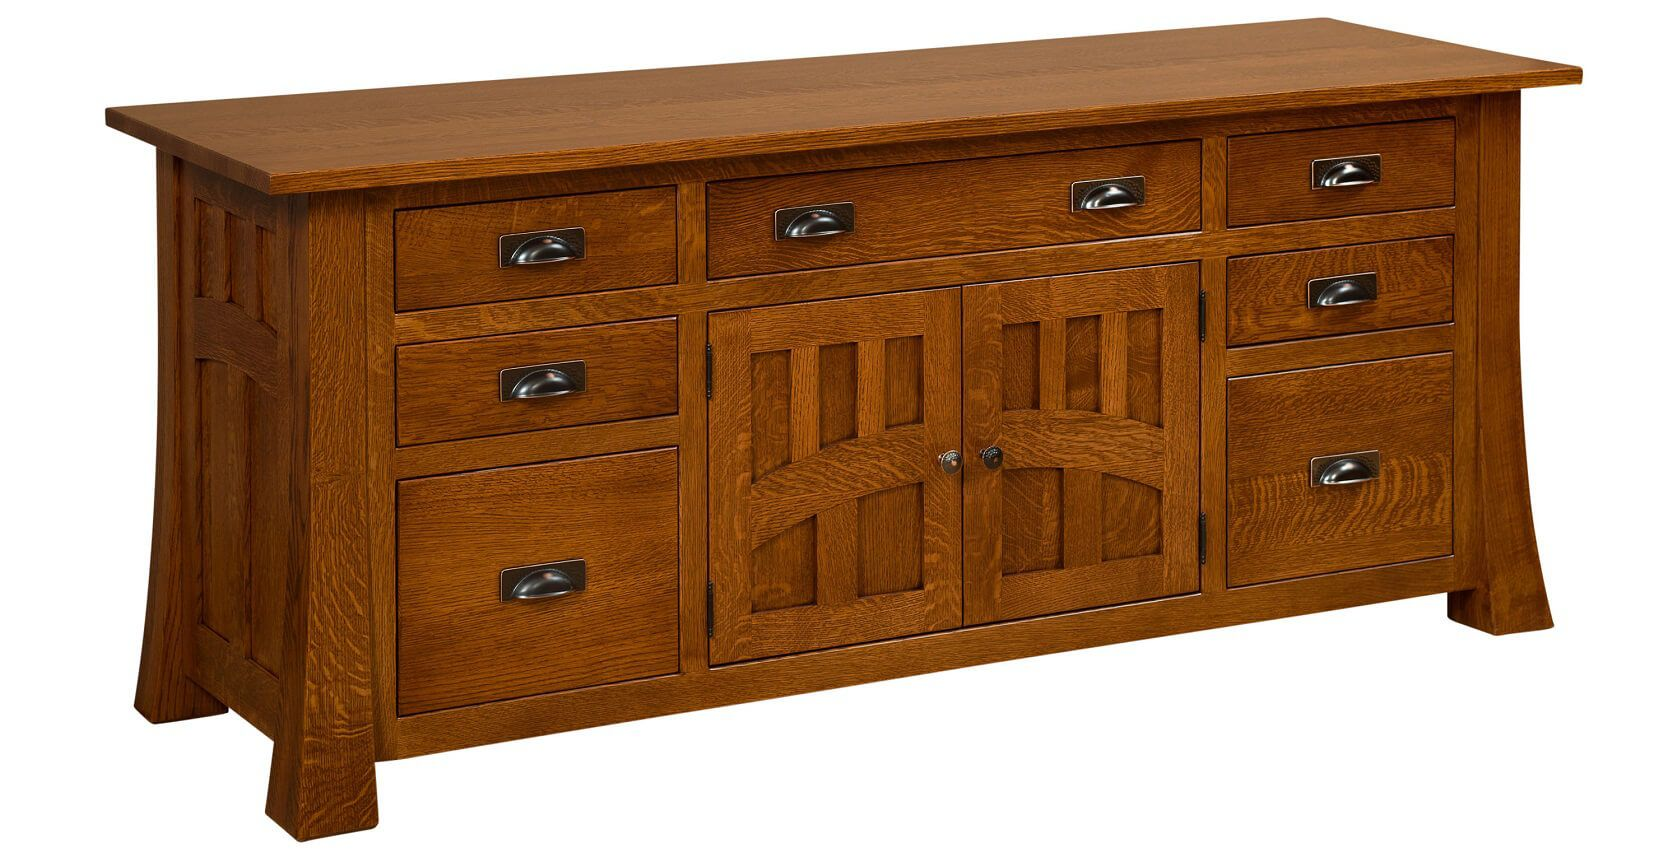 Mission Canyon Credenza with hutch removed